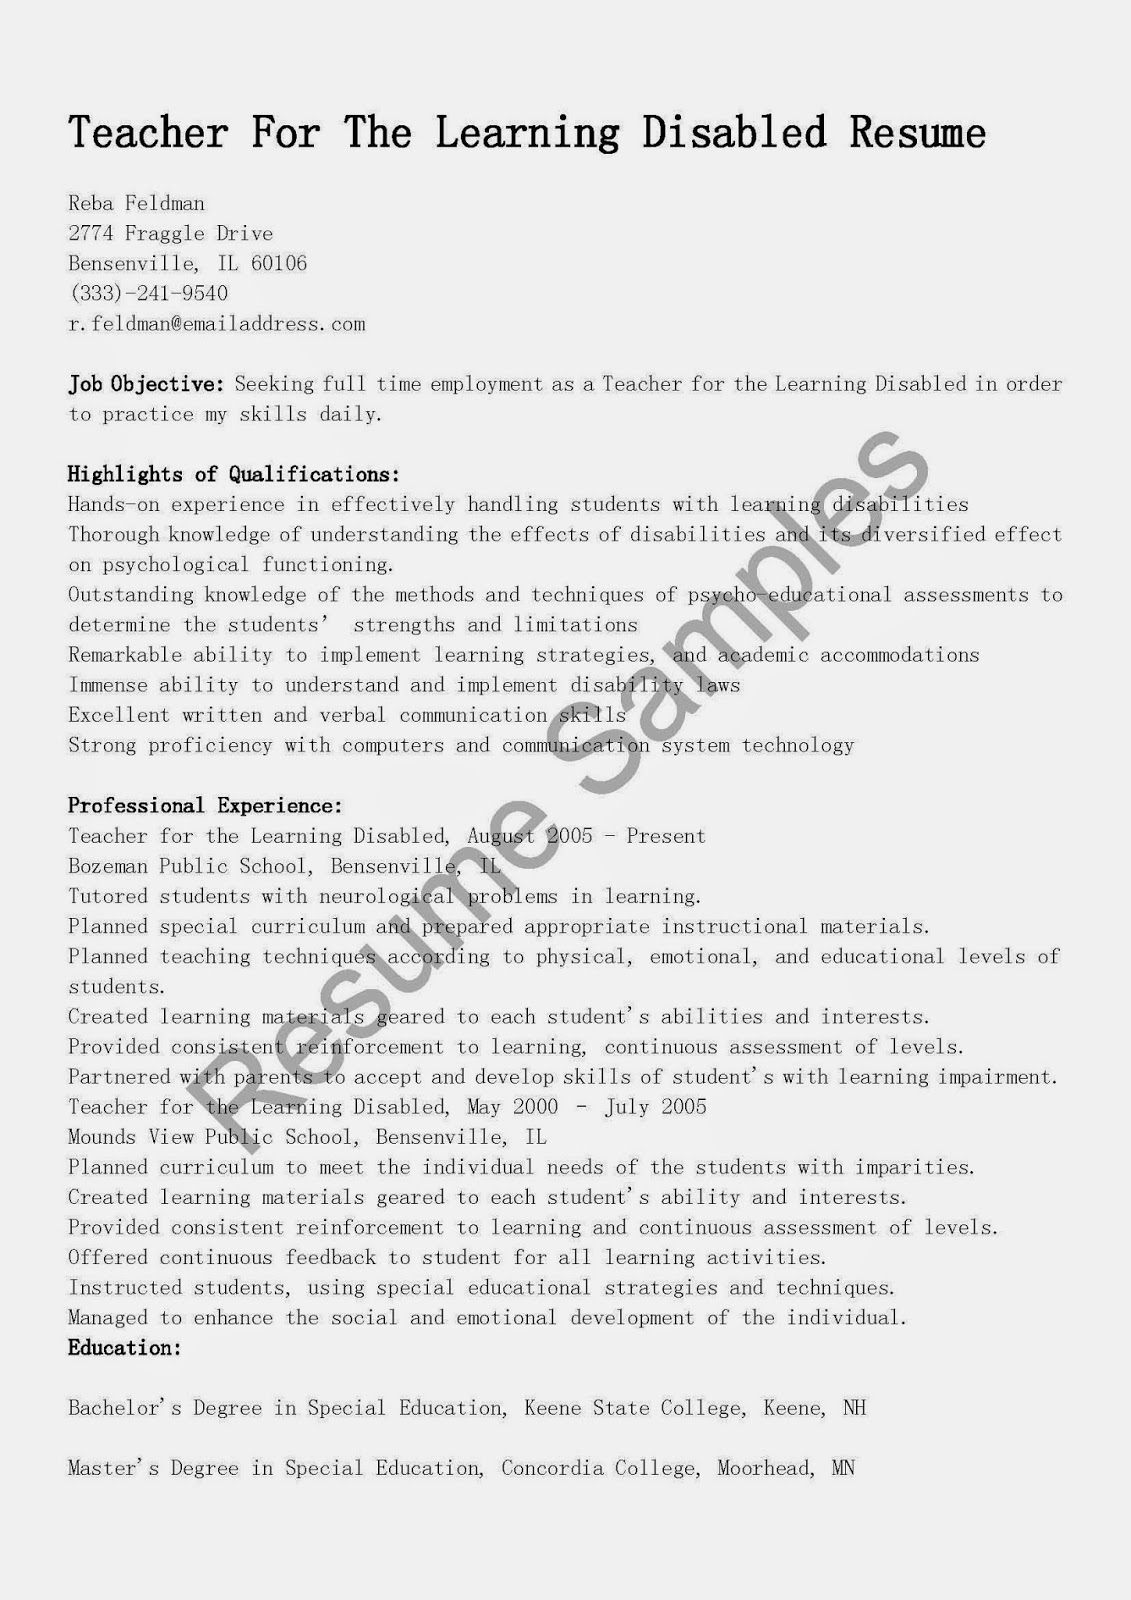 teacher resume samples for handicap kids